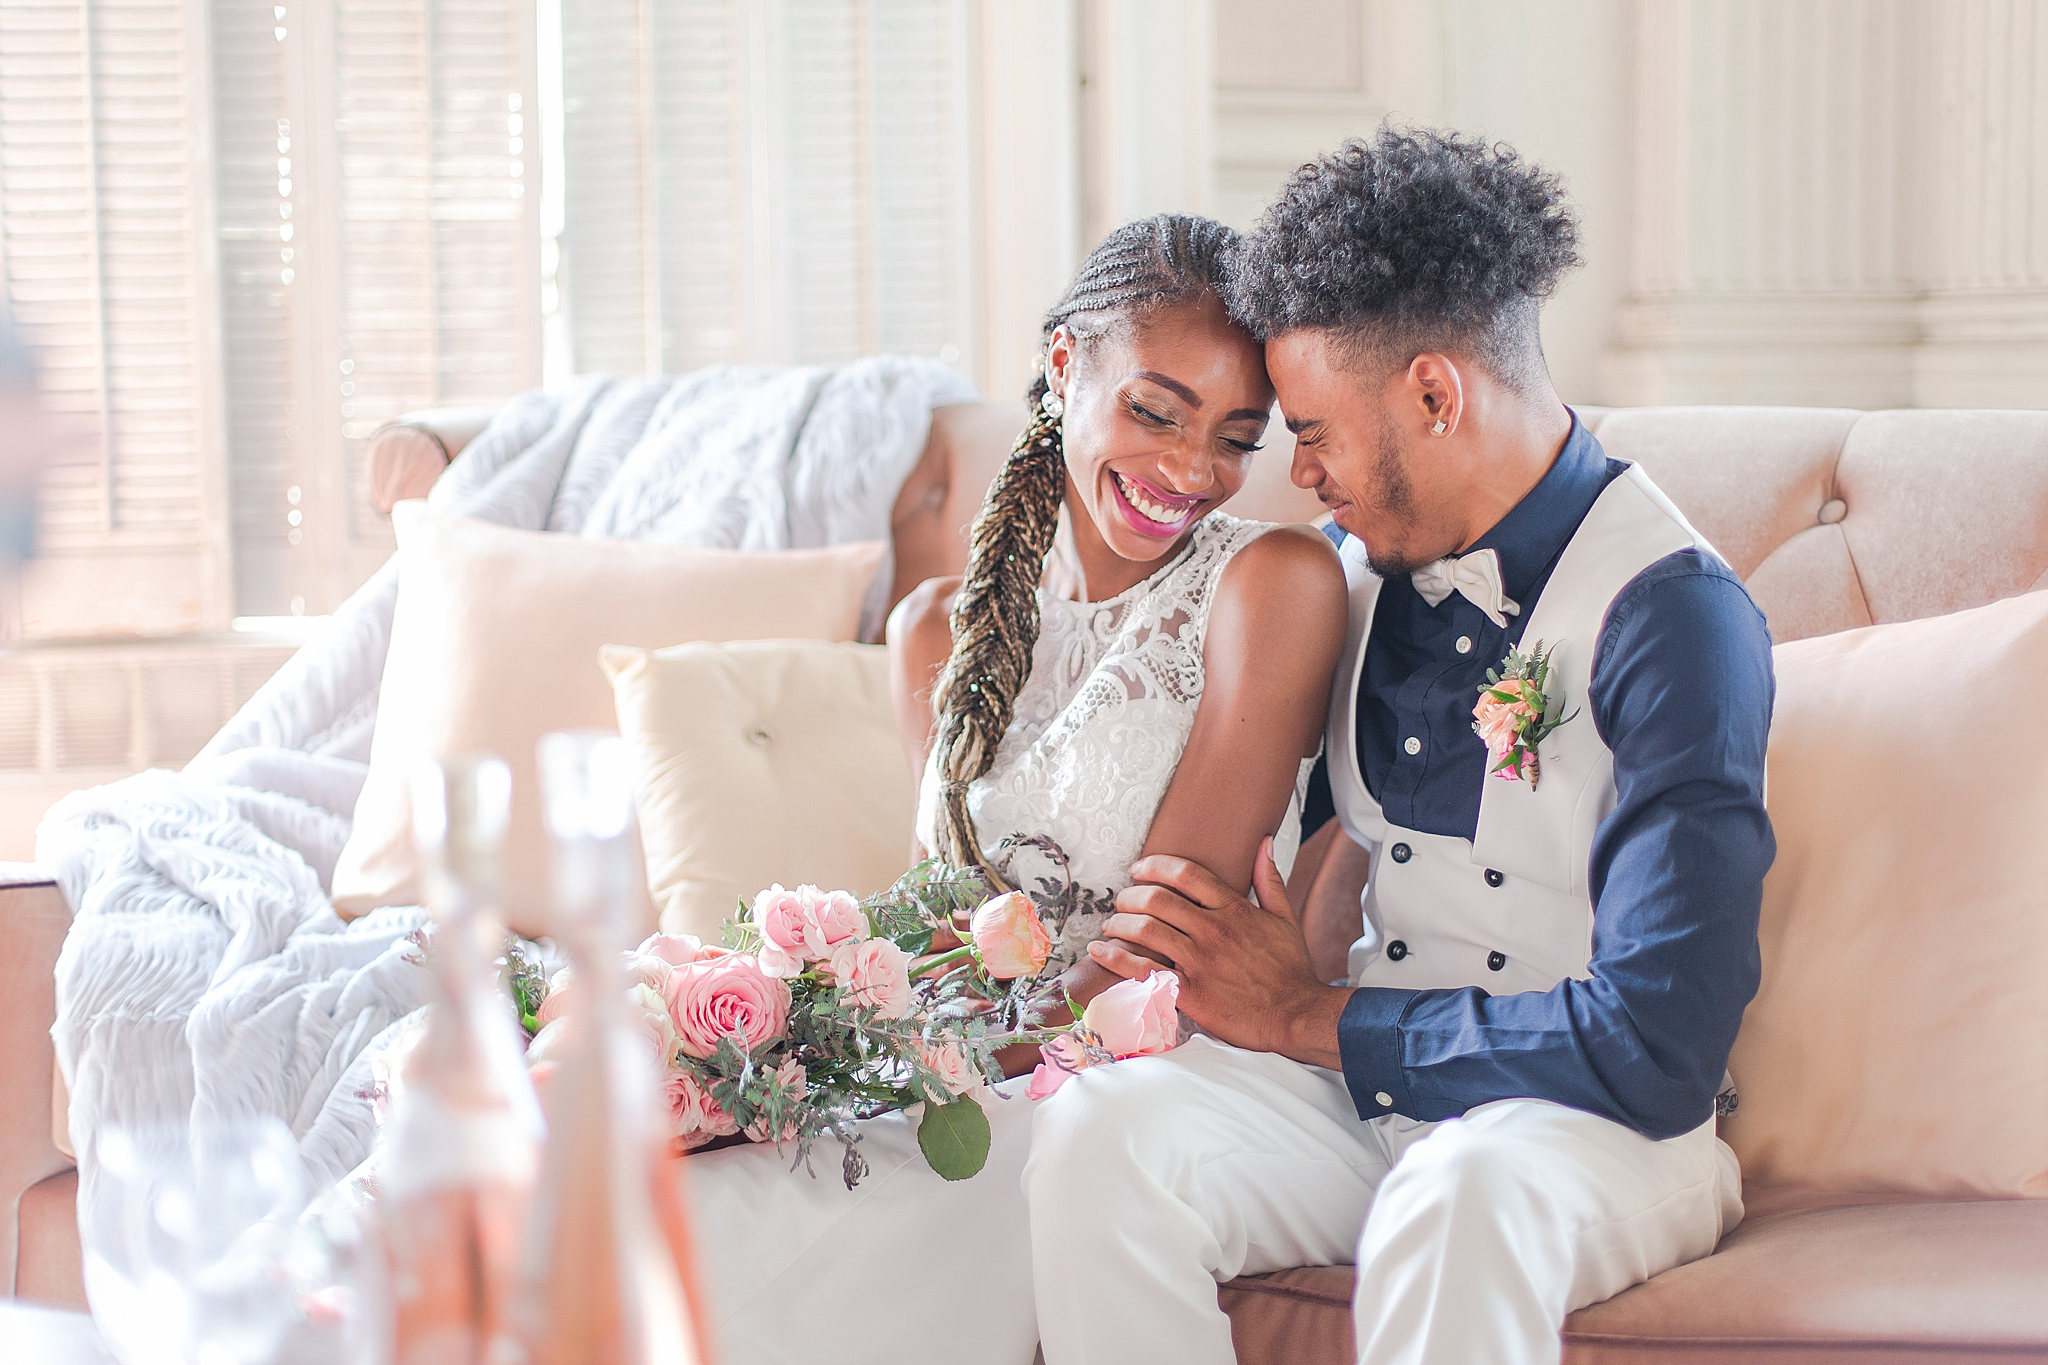 intimate-elopement-wedding-photography-at-belle-isle-boat-house-detroit-michigan-by-courtney-carolyn-photography_0029.jpg